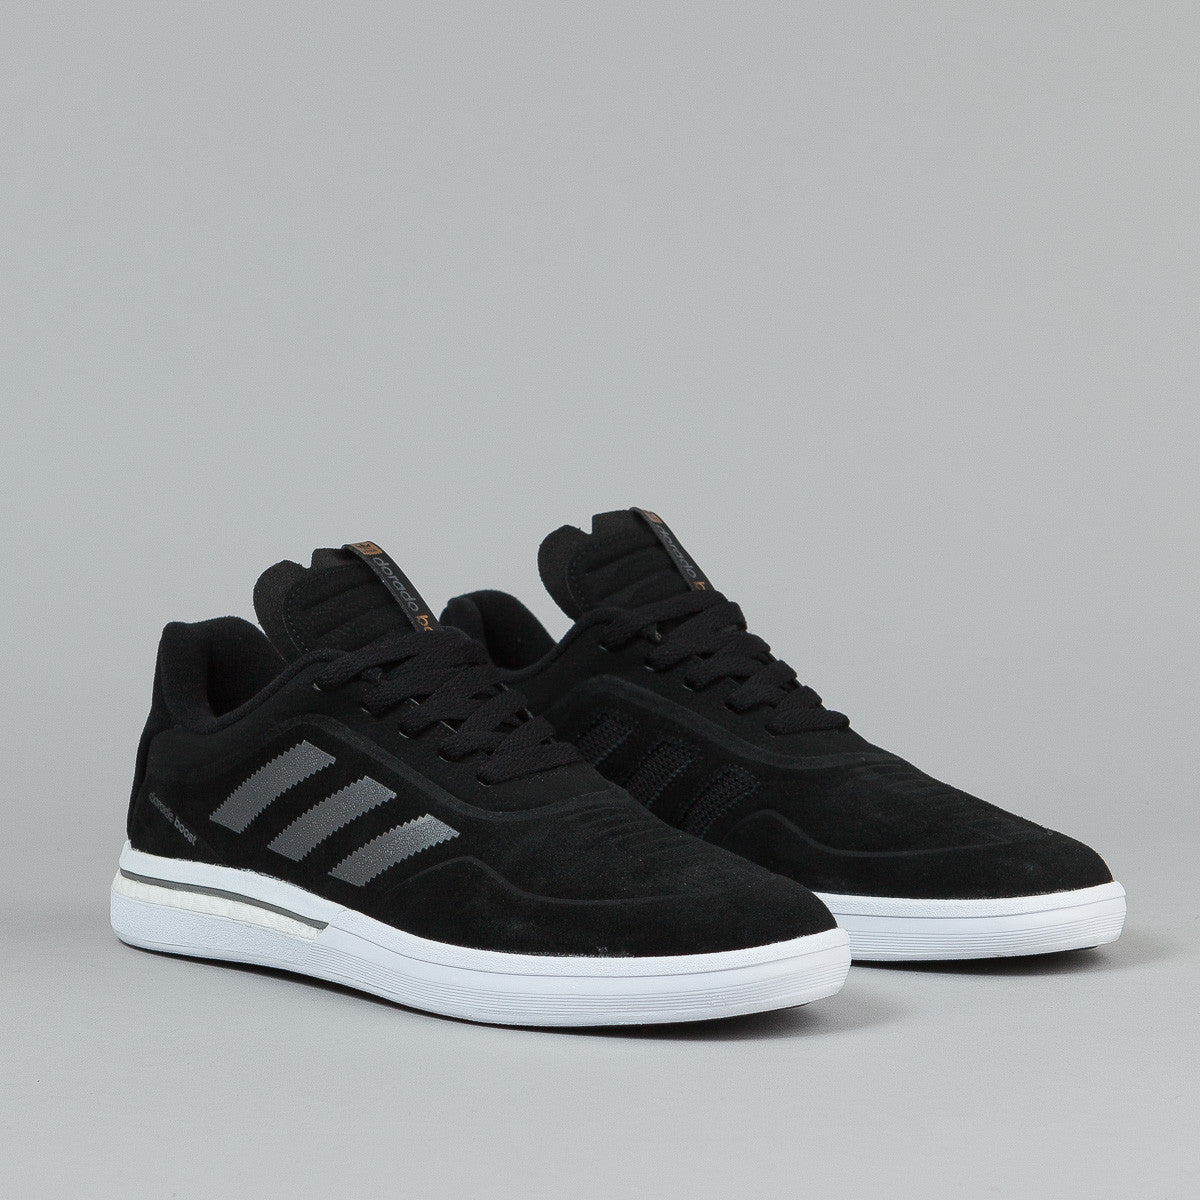 Adidas Dorado ADV Boost Shoes - Core Black / Iron Metallic / Running White